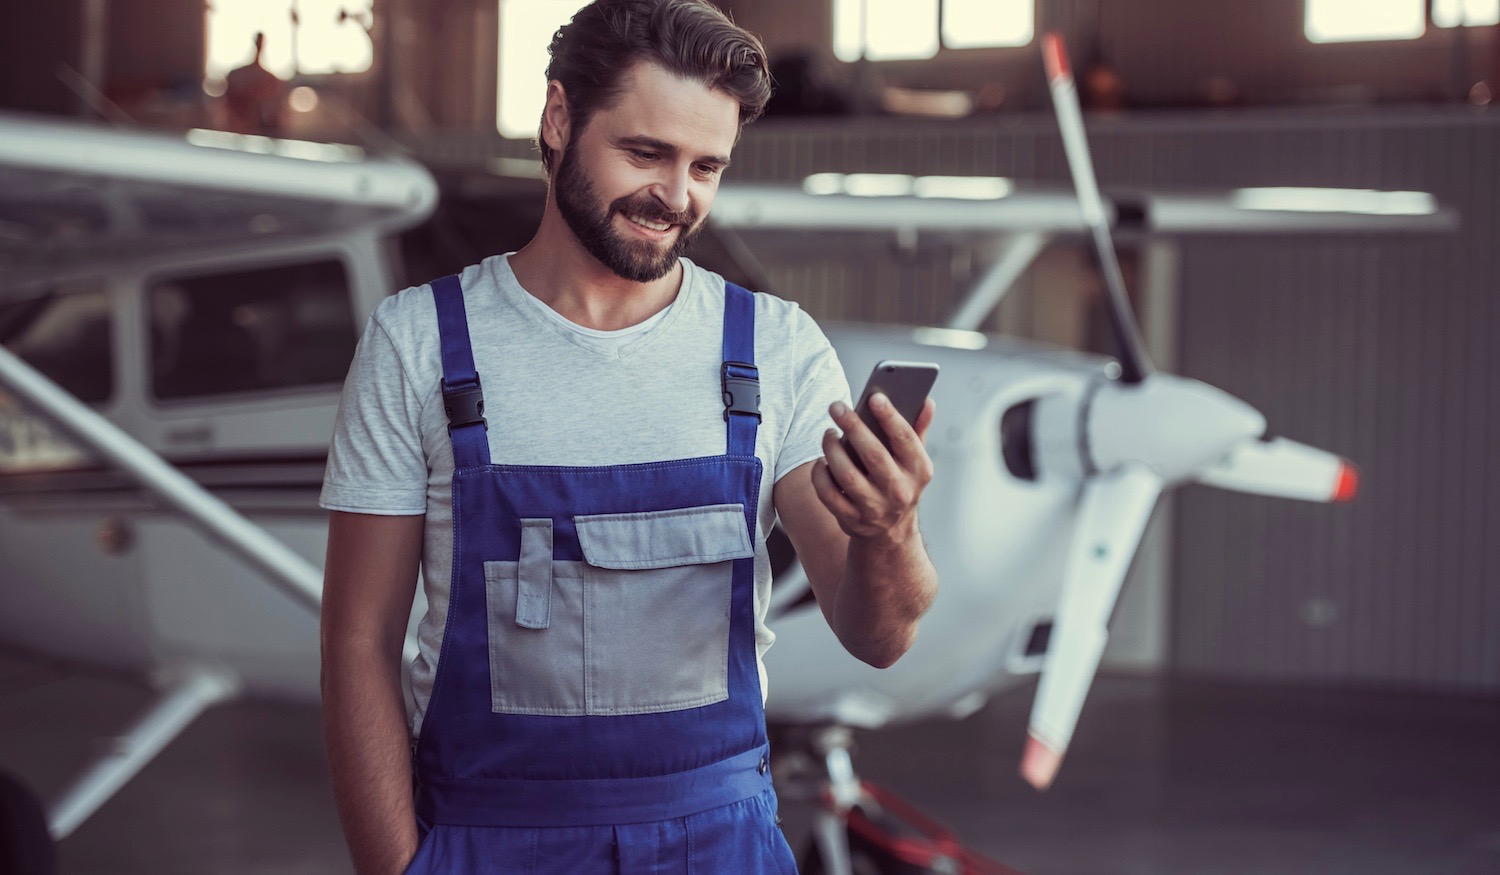 bearded mechanic in uniform is using a smart phone and smiling while standing near an aircraft in hangar